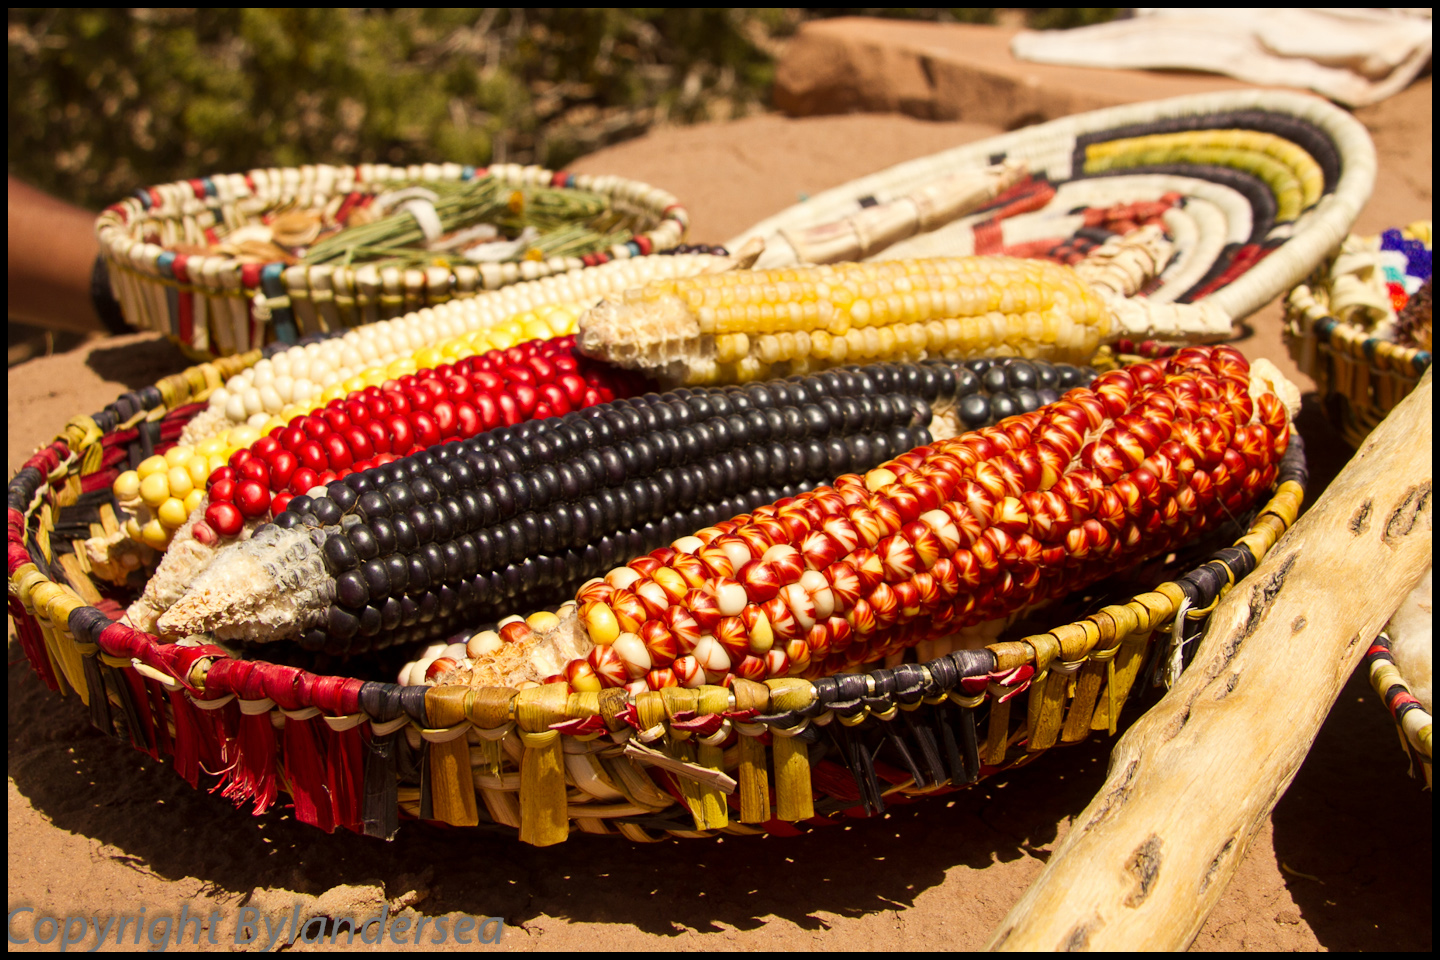 The Hopi grow many varieties of corn.